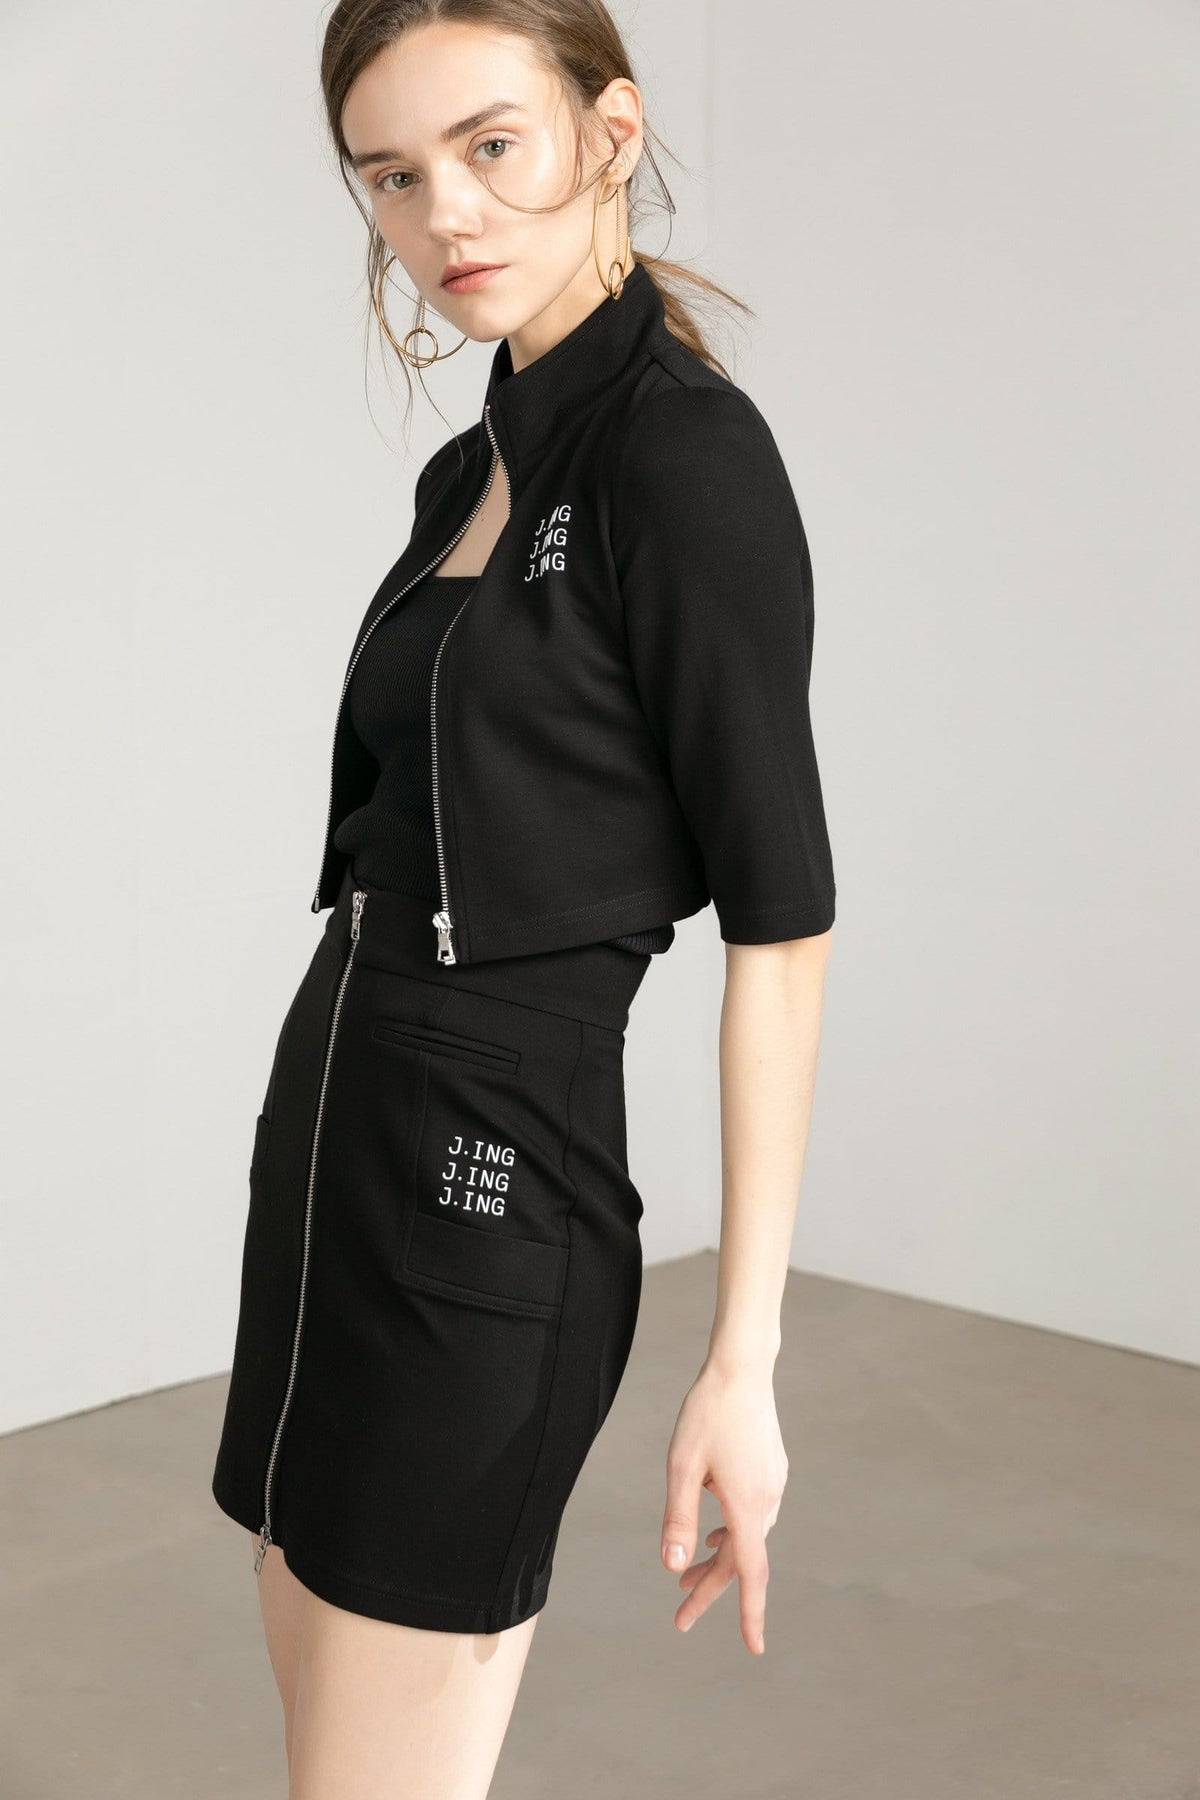 JING Black Activewear Jacket